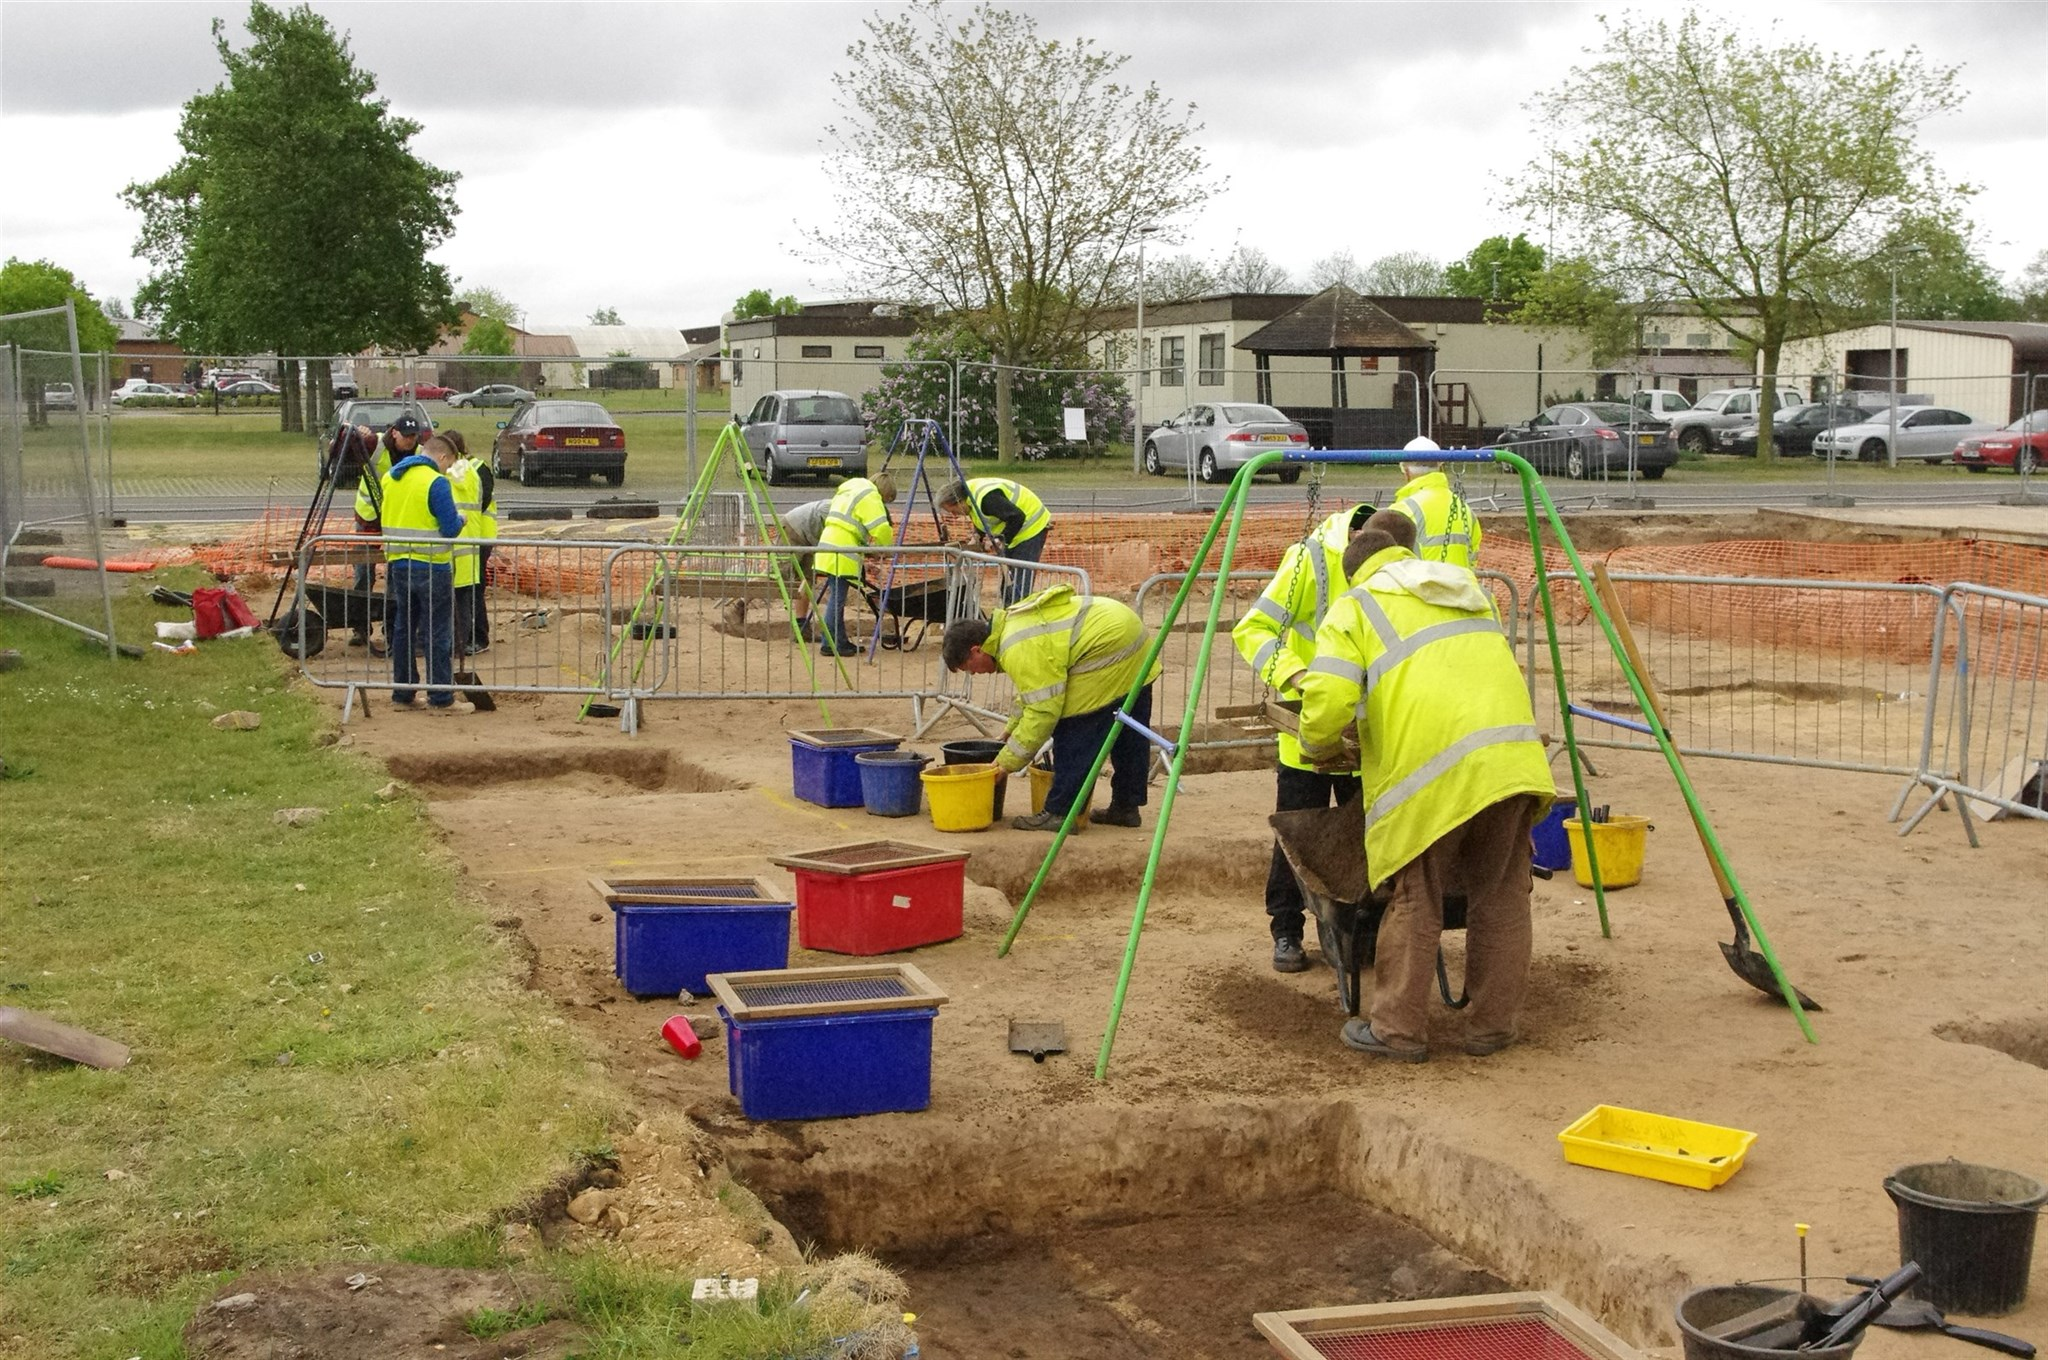 Case Study: Community excavation at RAF Lakenheath